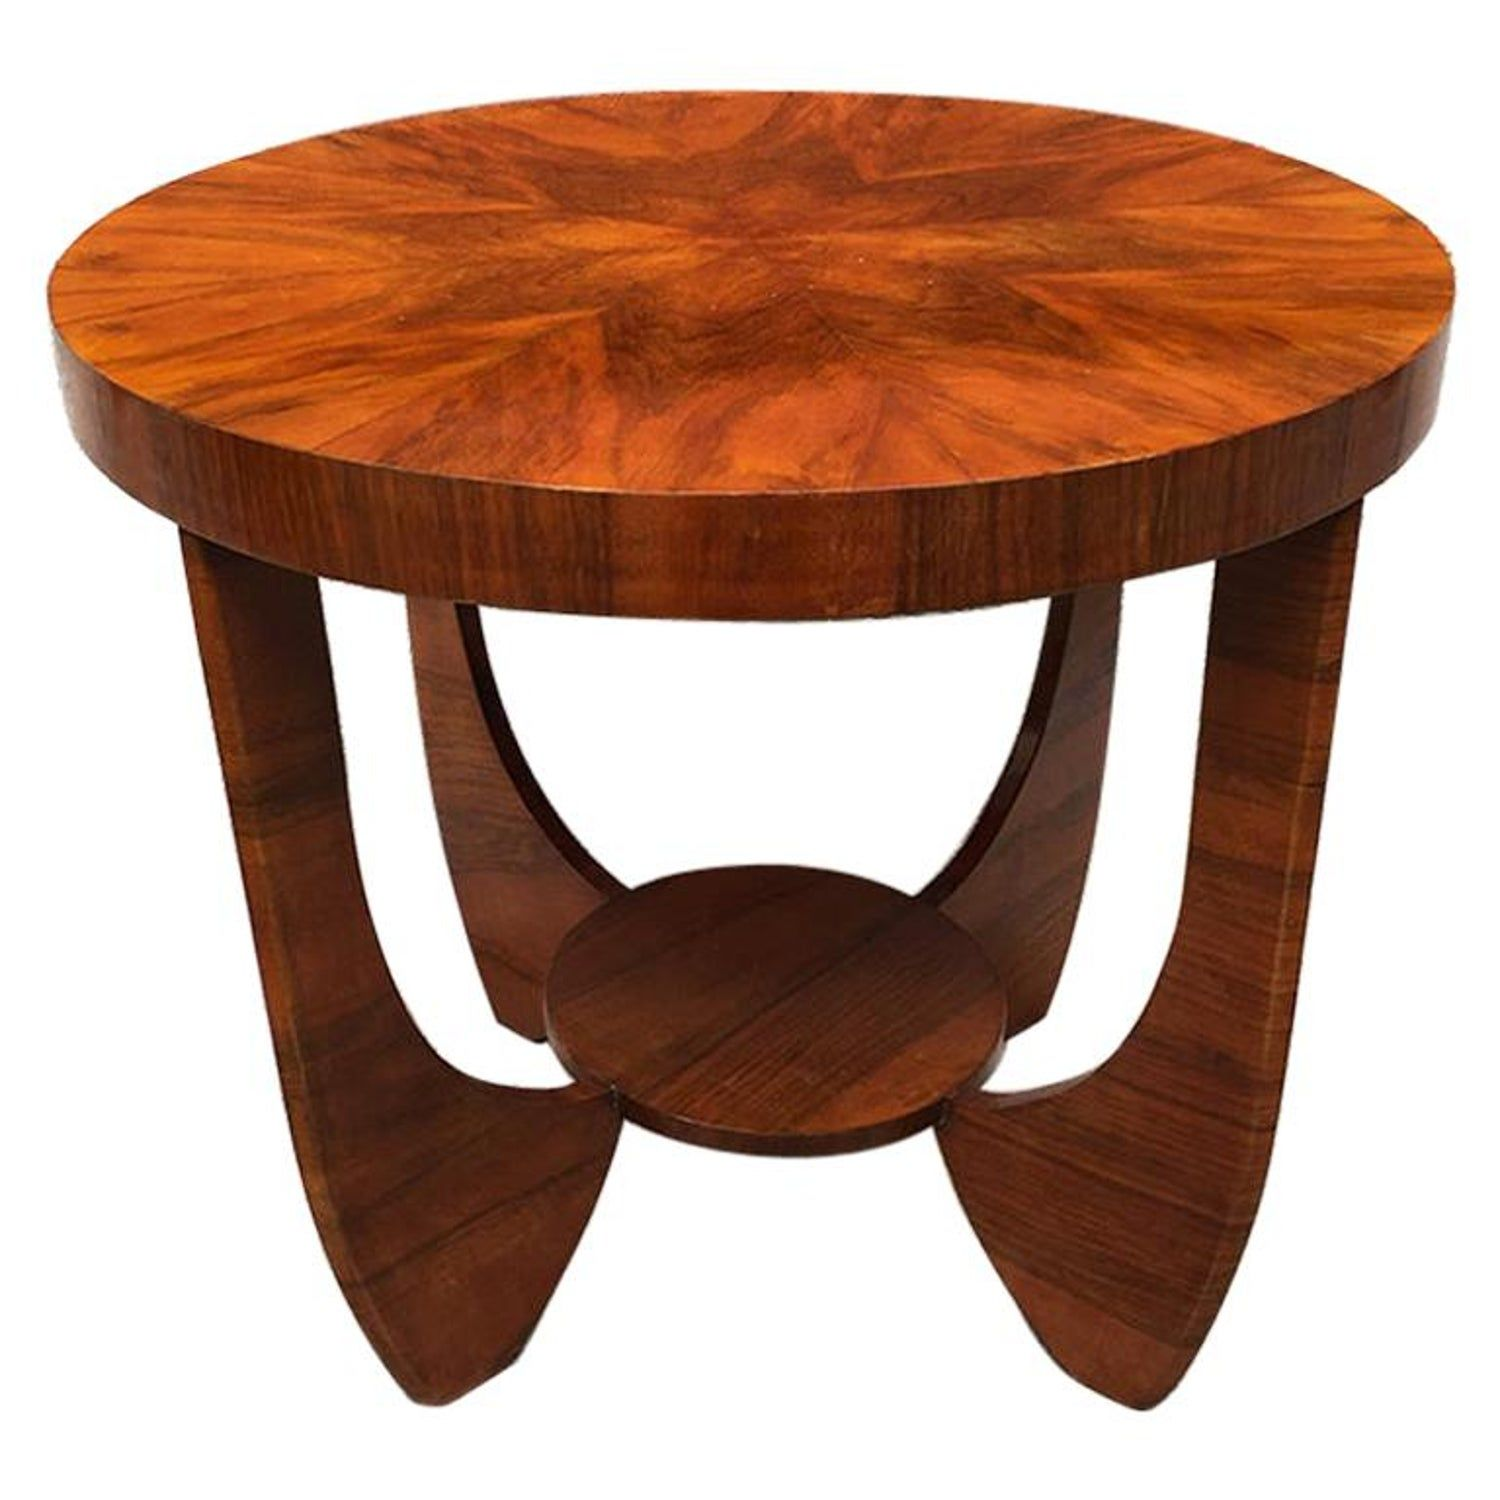 Our Best Living Room Furniture Deals Coffee Table Round Coffee Table Round Coffee Table Modern [ 3500 x 3500 Pixel ]